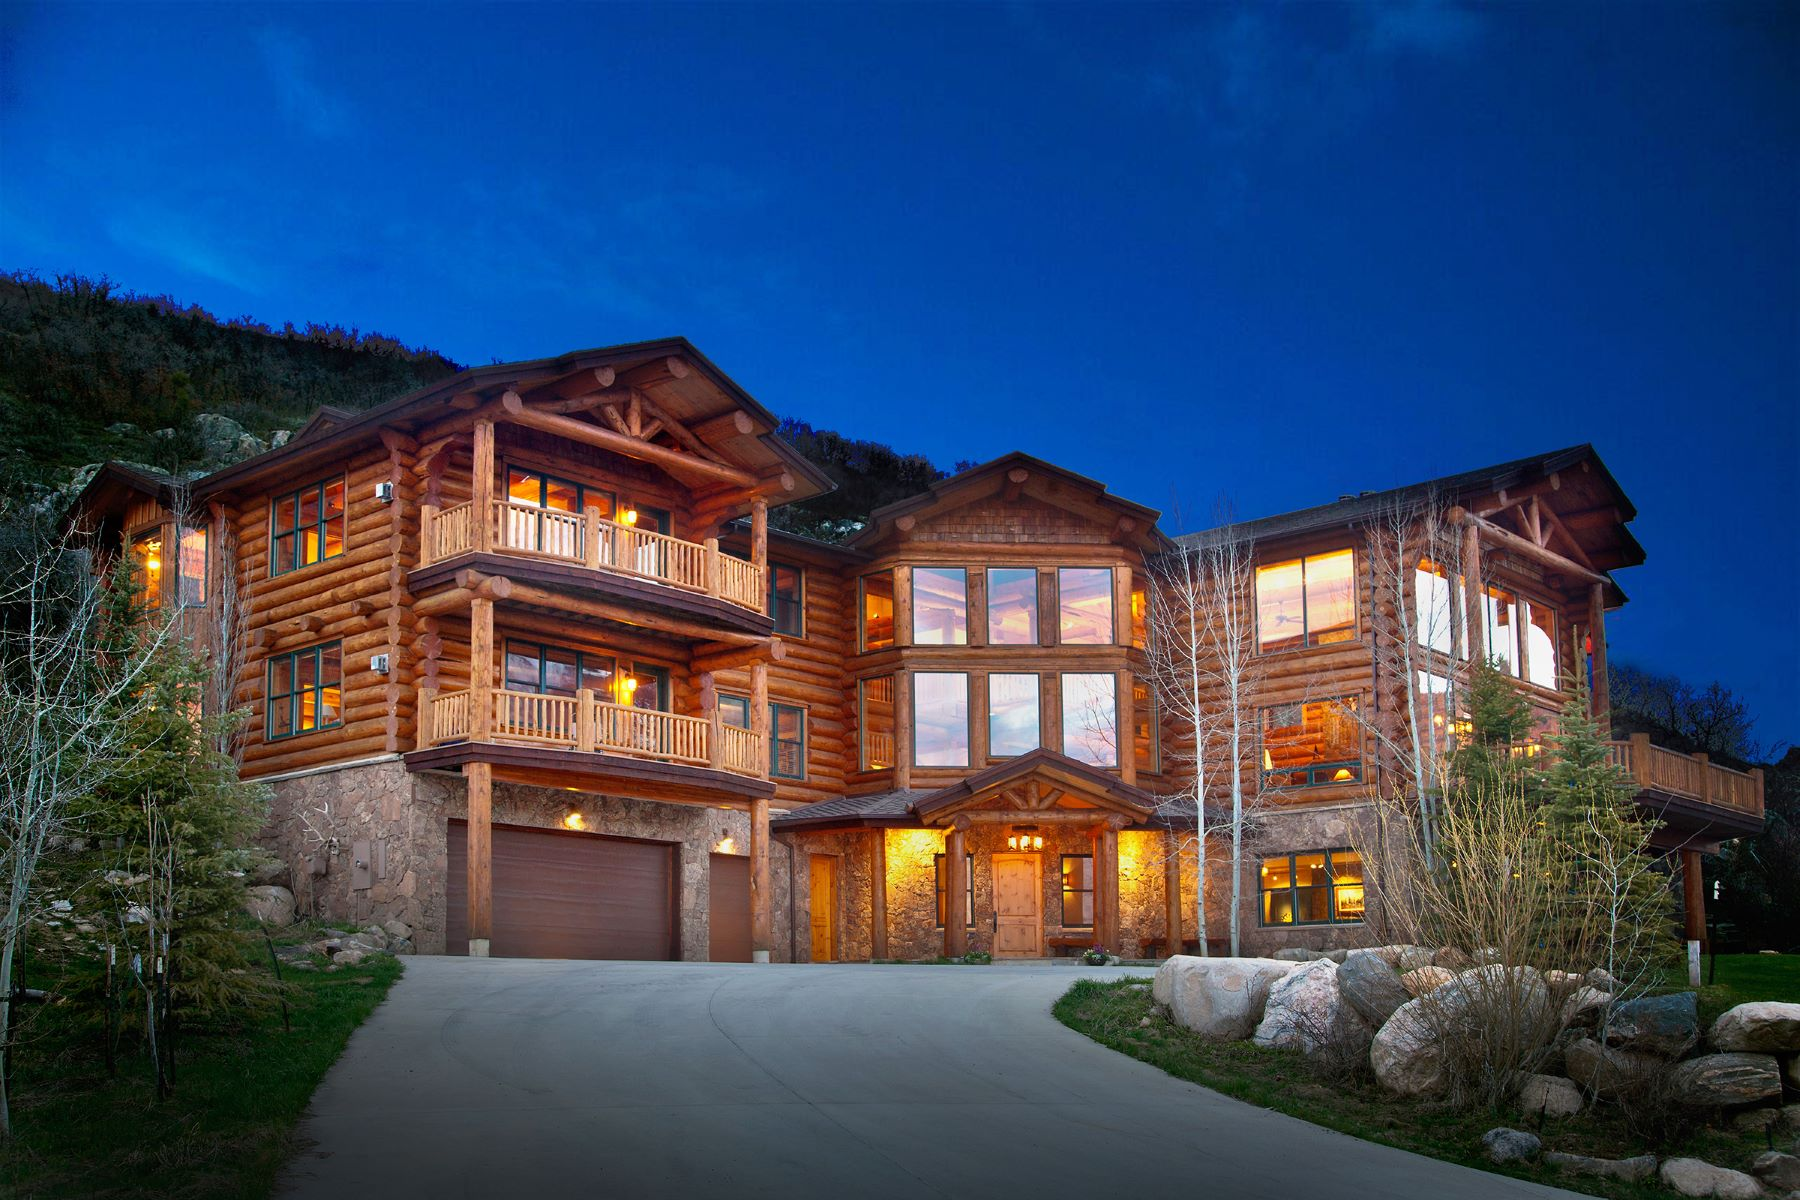 Single Family Home for Sale at Sanctuary Log Home 2600 Heavenly View Steamboat Springs, Colorado 80487 United States